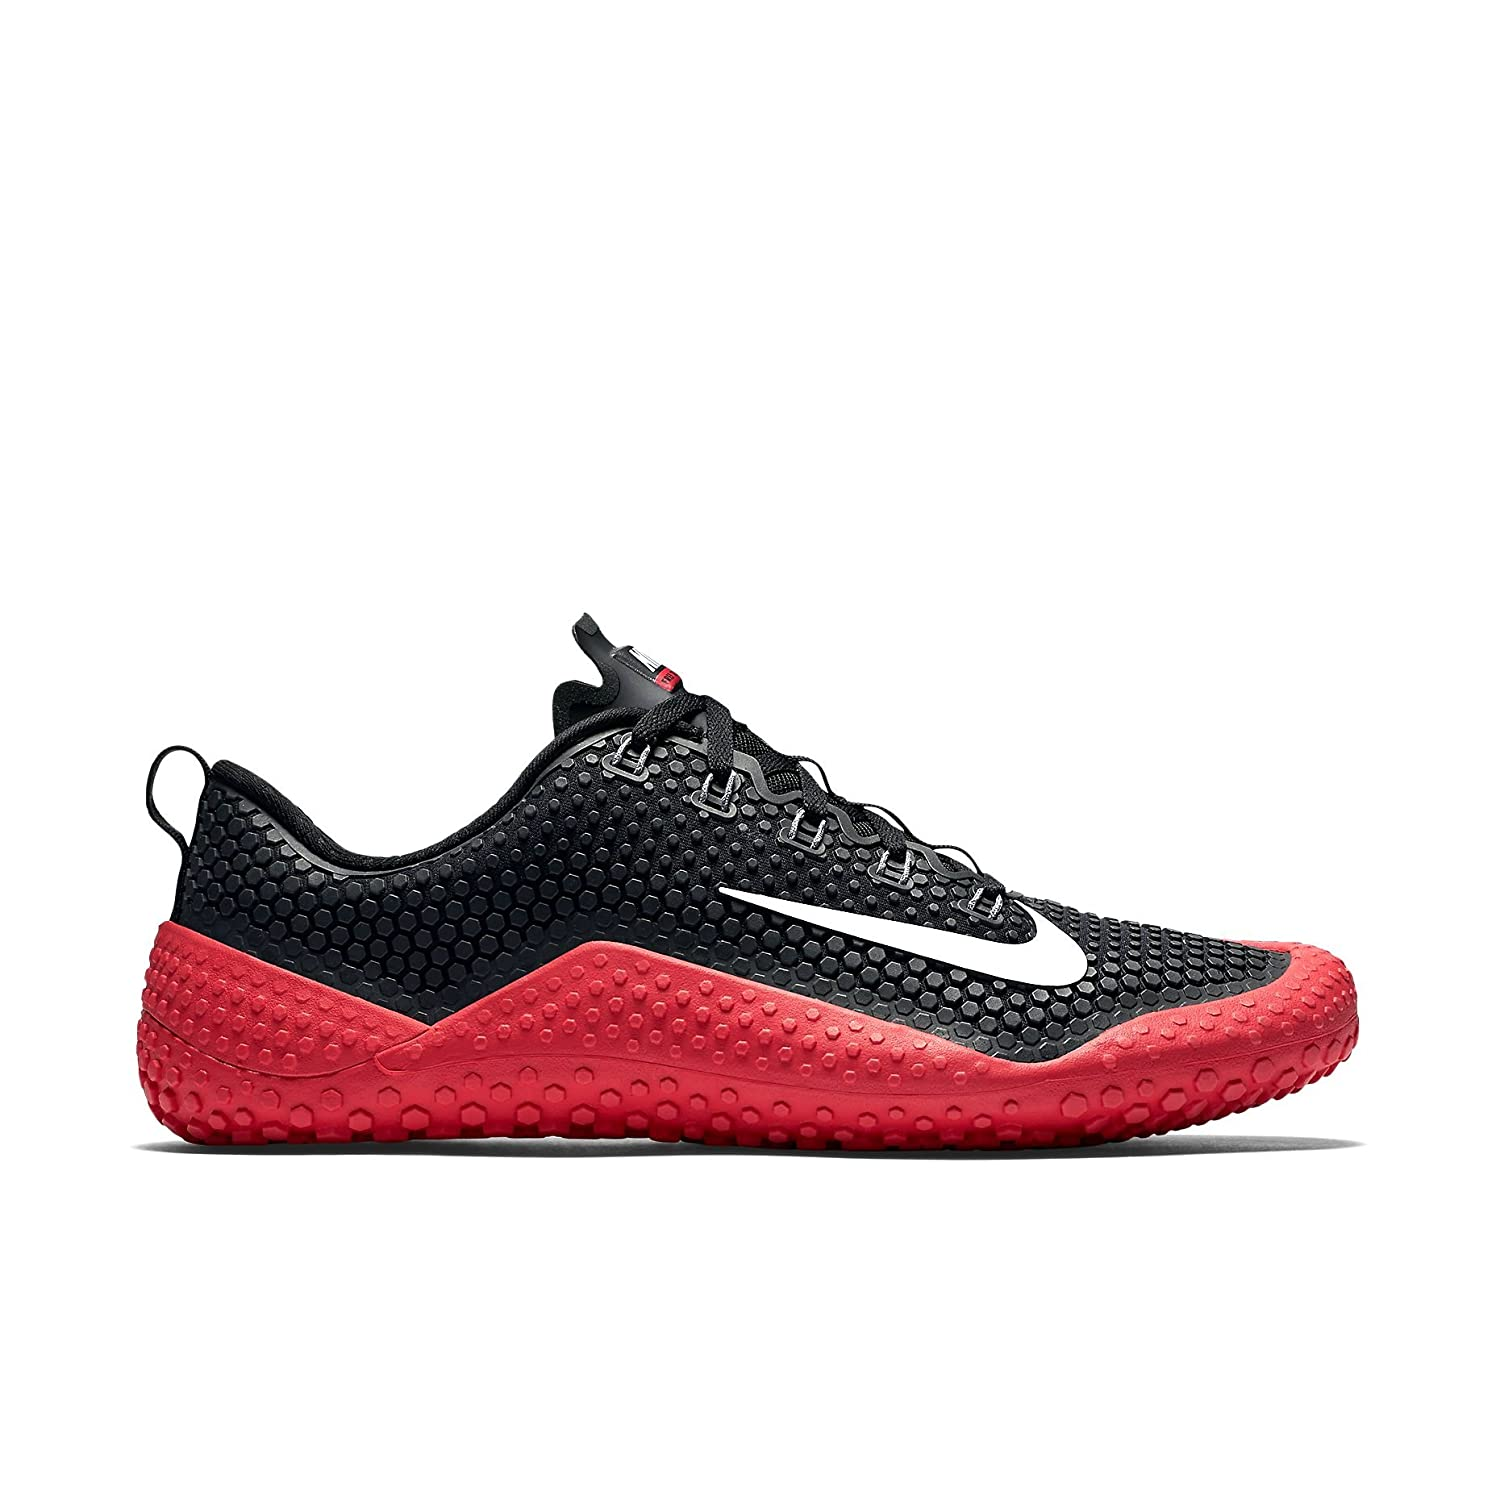 9f34769fcd15 Nike Men s Free Trainer 1.0 Black red White 807436-010 (Size  11)  Amazon.ca   Shoes   Handbags